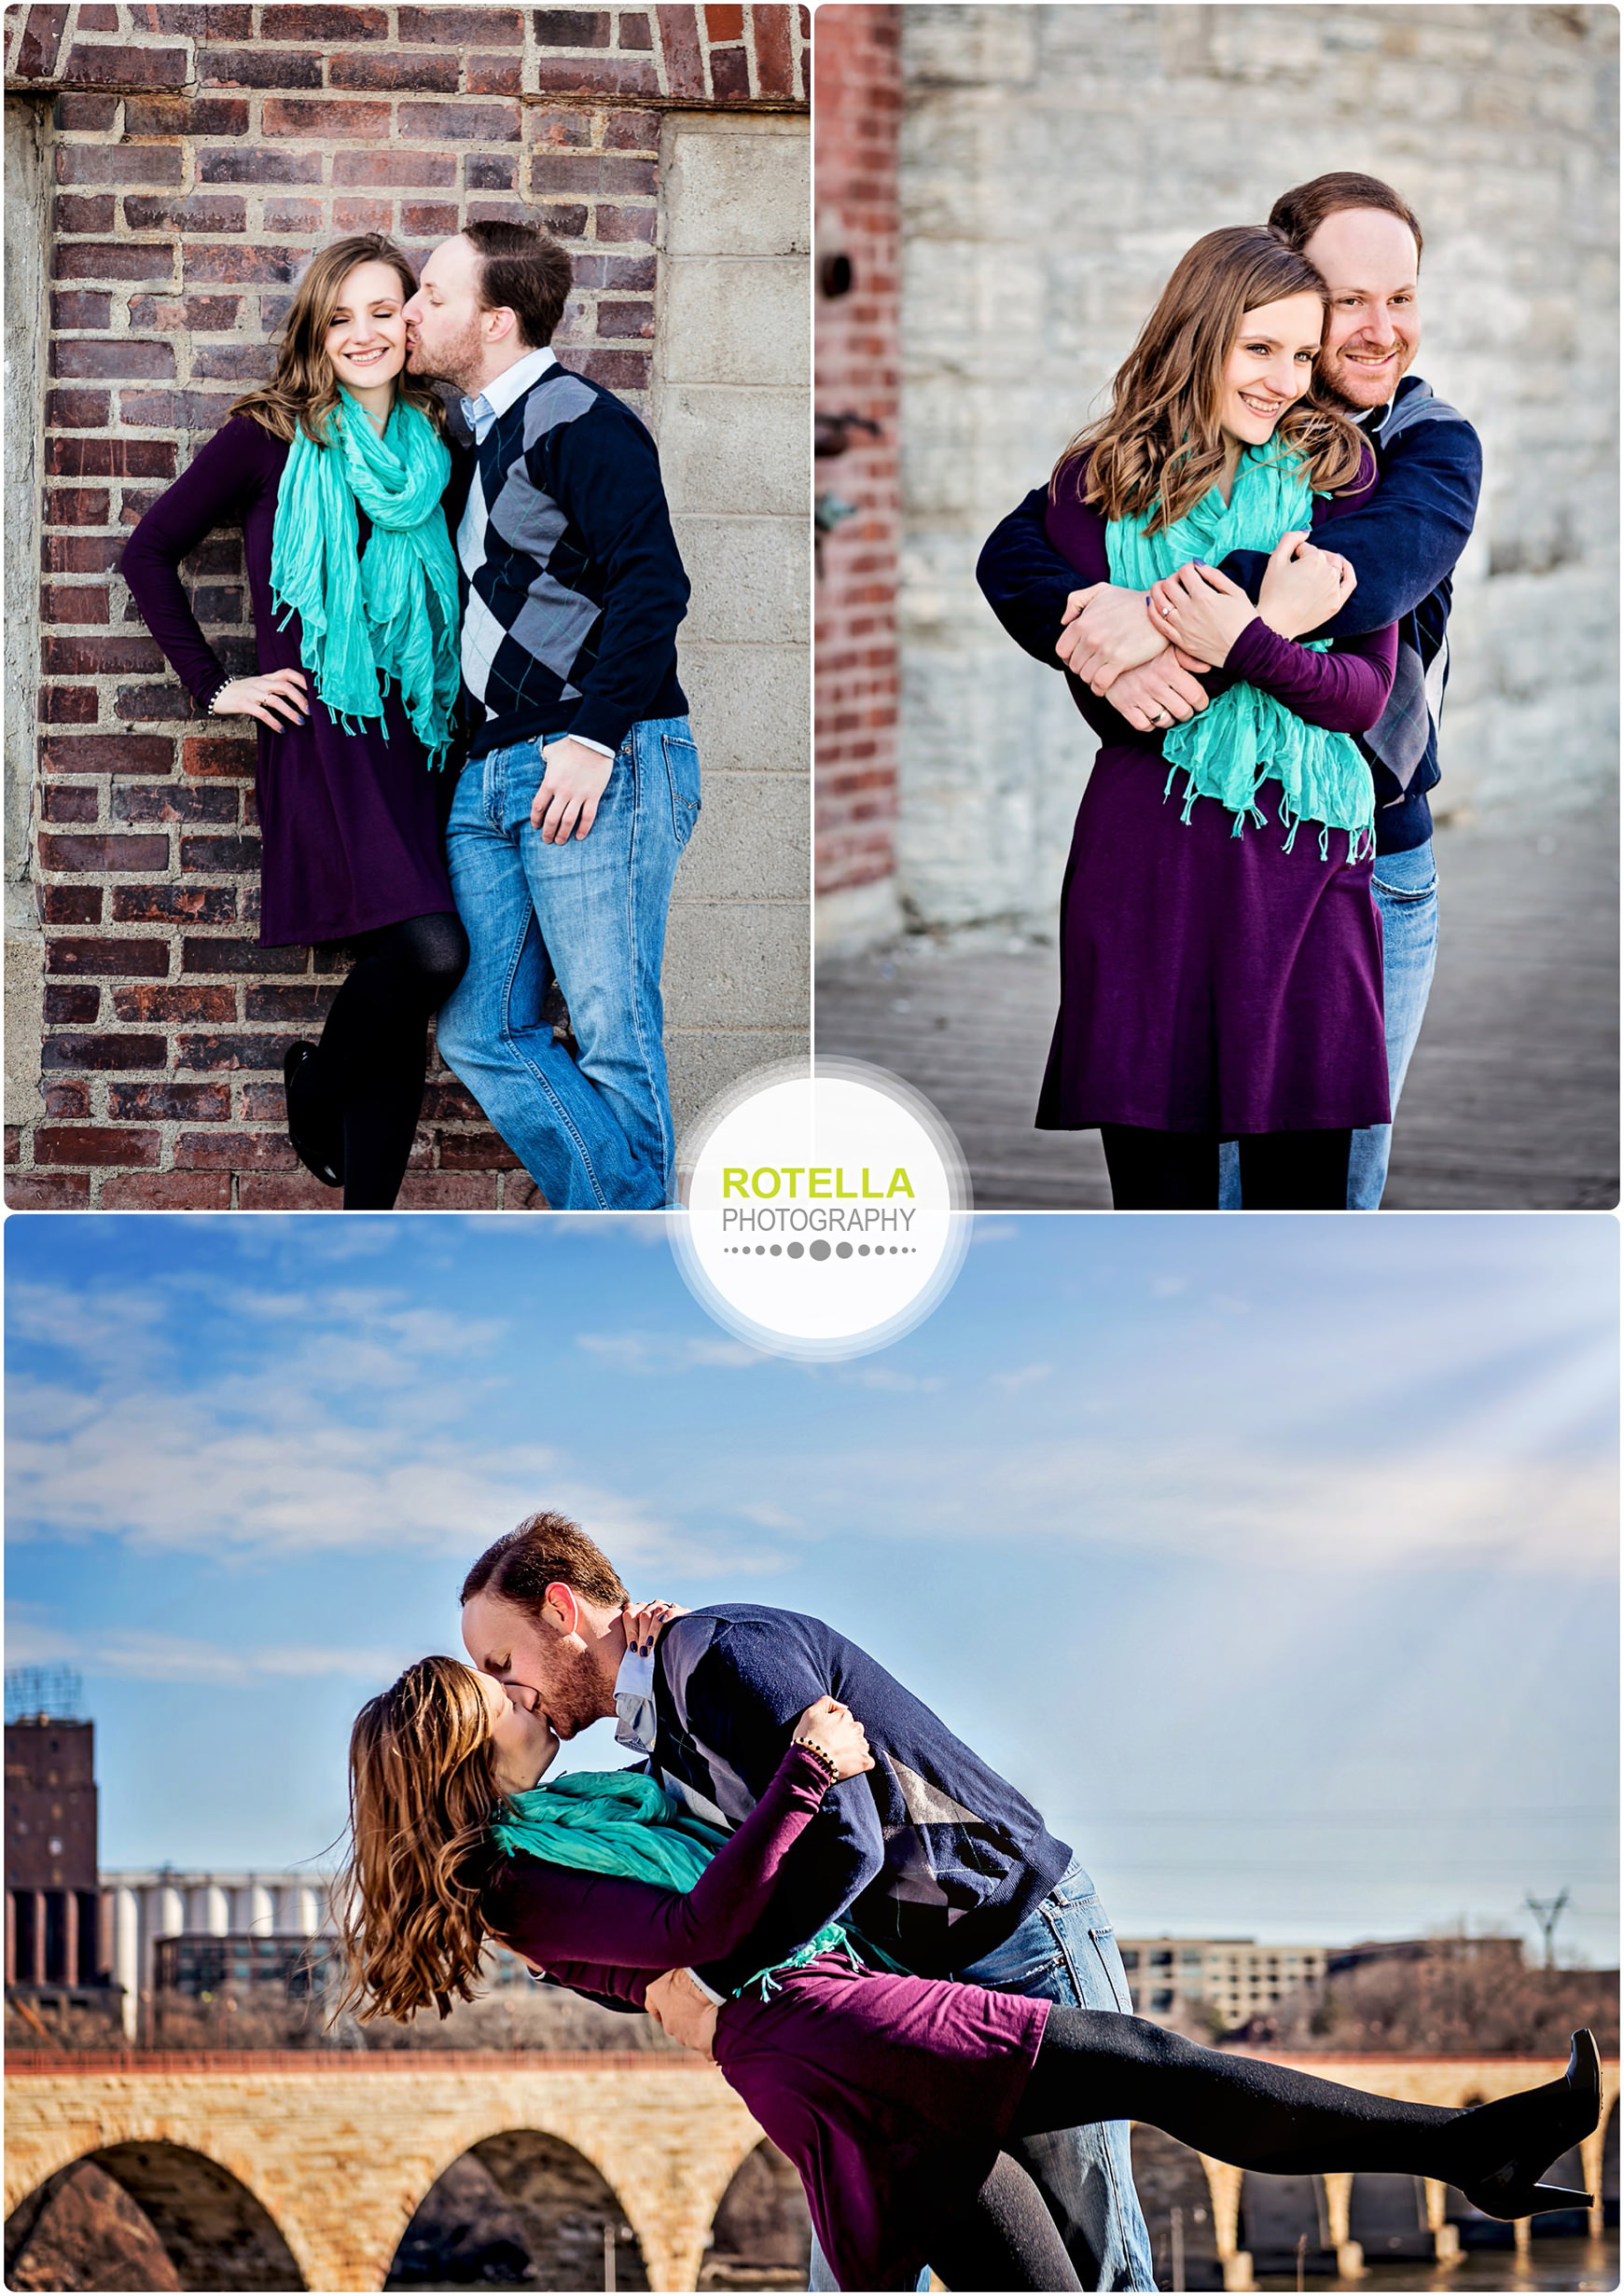 A-A-Minneapolis-Engagement-Photography-Rotella-Photography-2015_0006